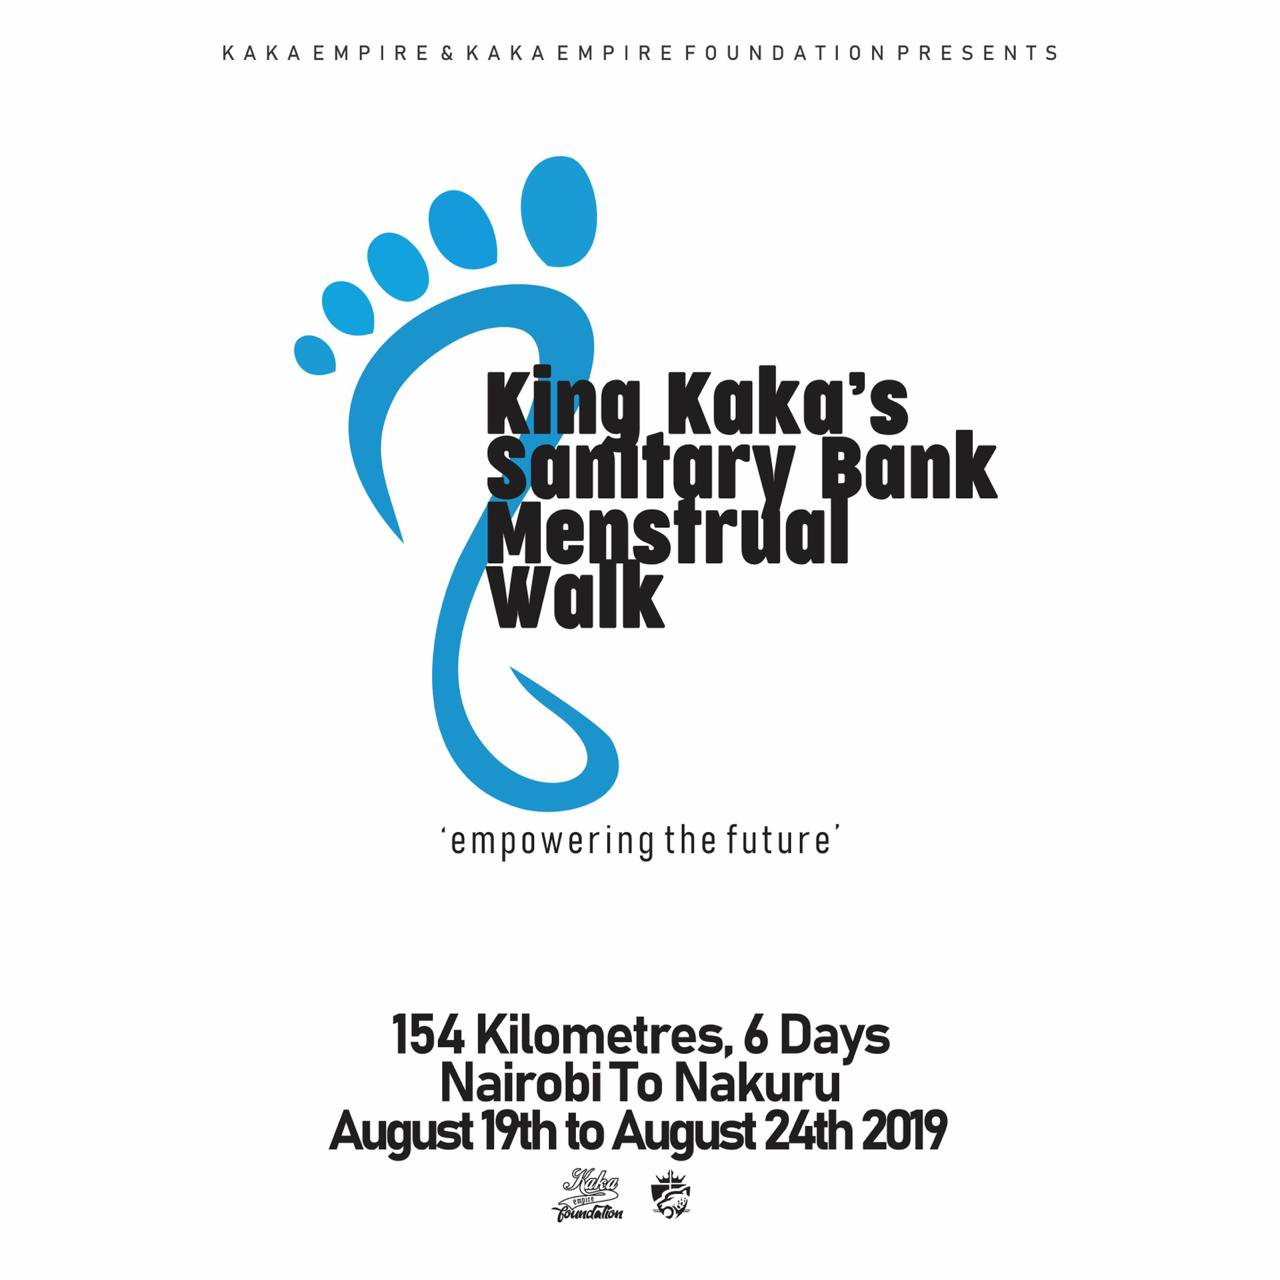 <b>MESTRUAL WALK</b><br> WALK TO KEEP 100,000 GIRLS IN SCHOOL